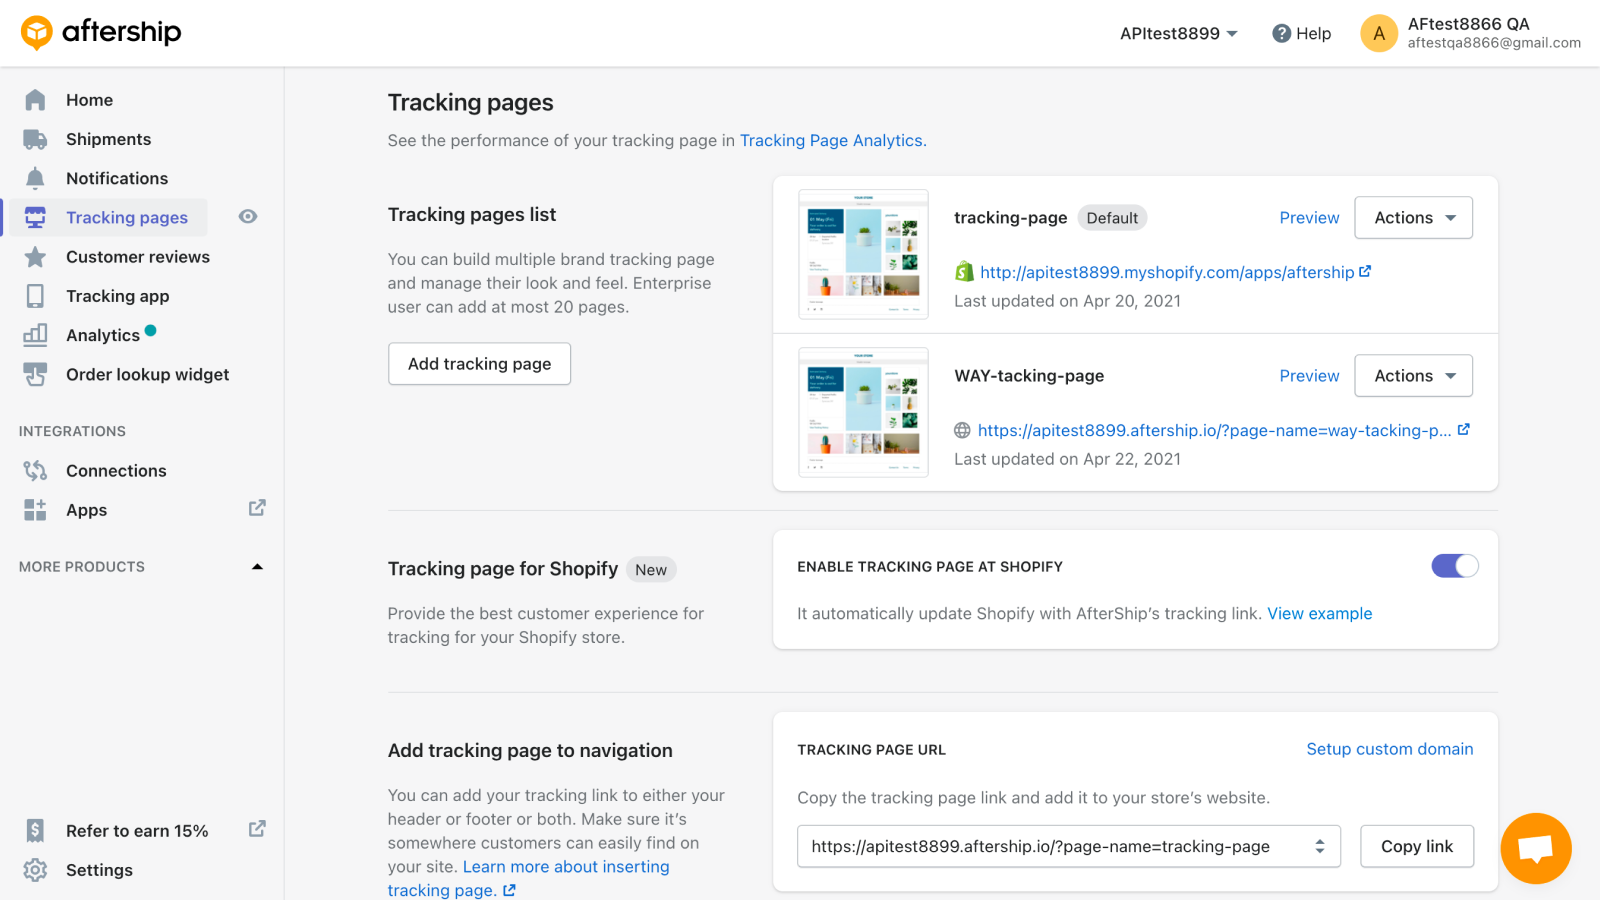 Branded tracking page, product recommendations, & social links